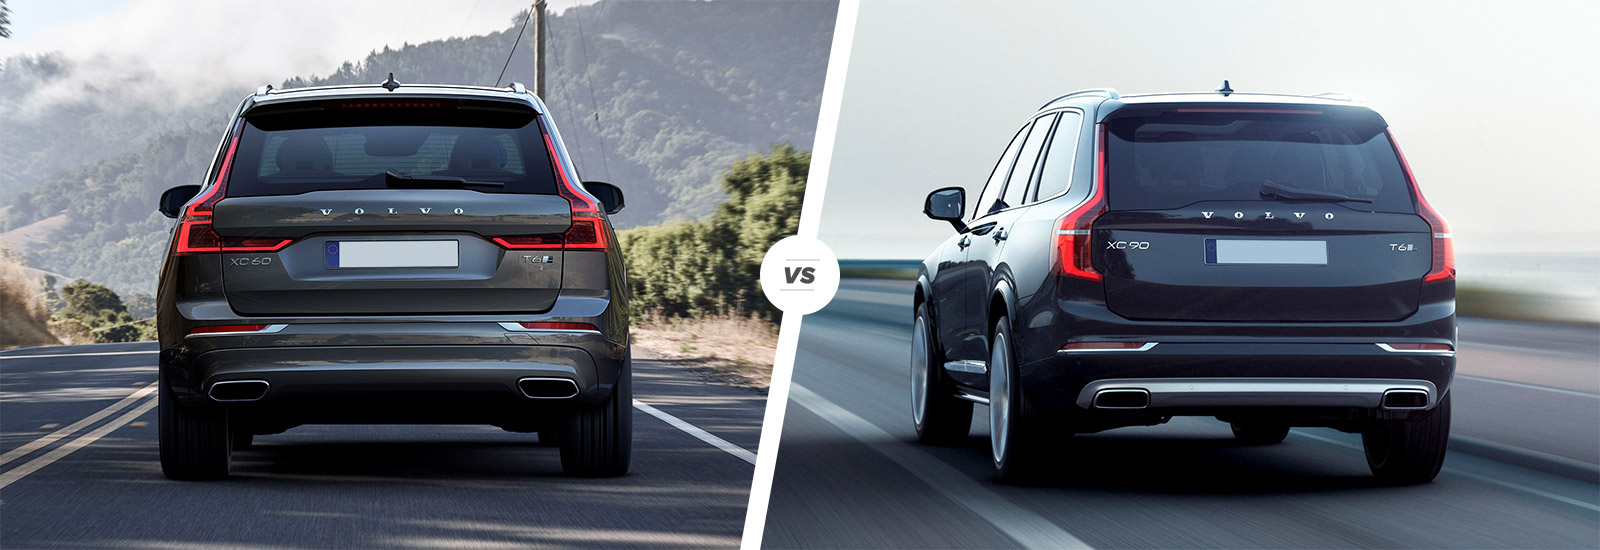 medium resolution of volvo xc60 vs volvo xc90 verdict